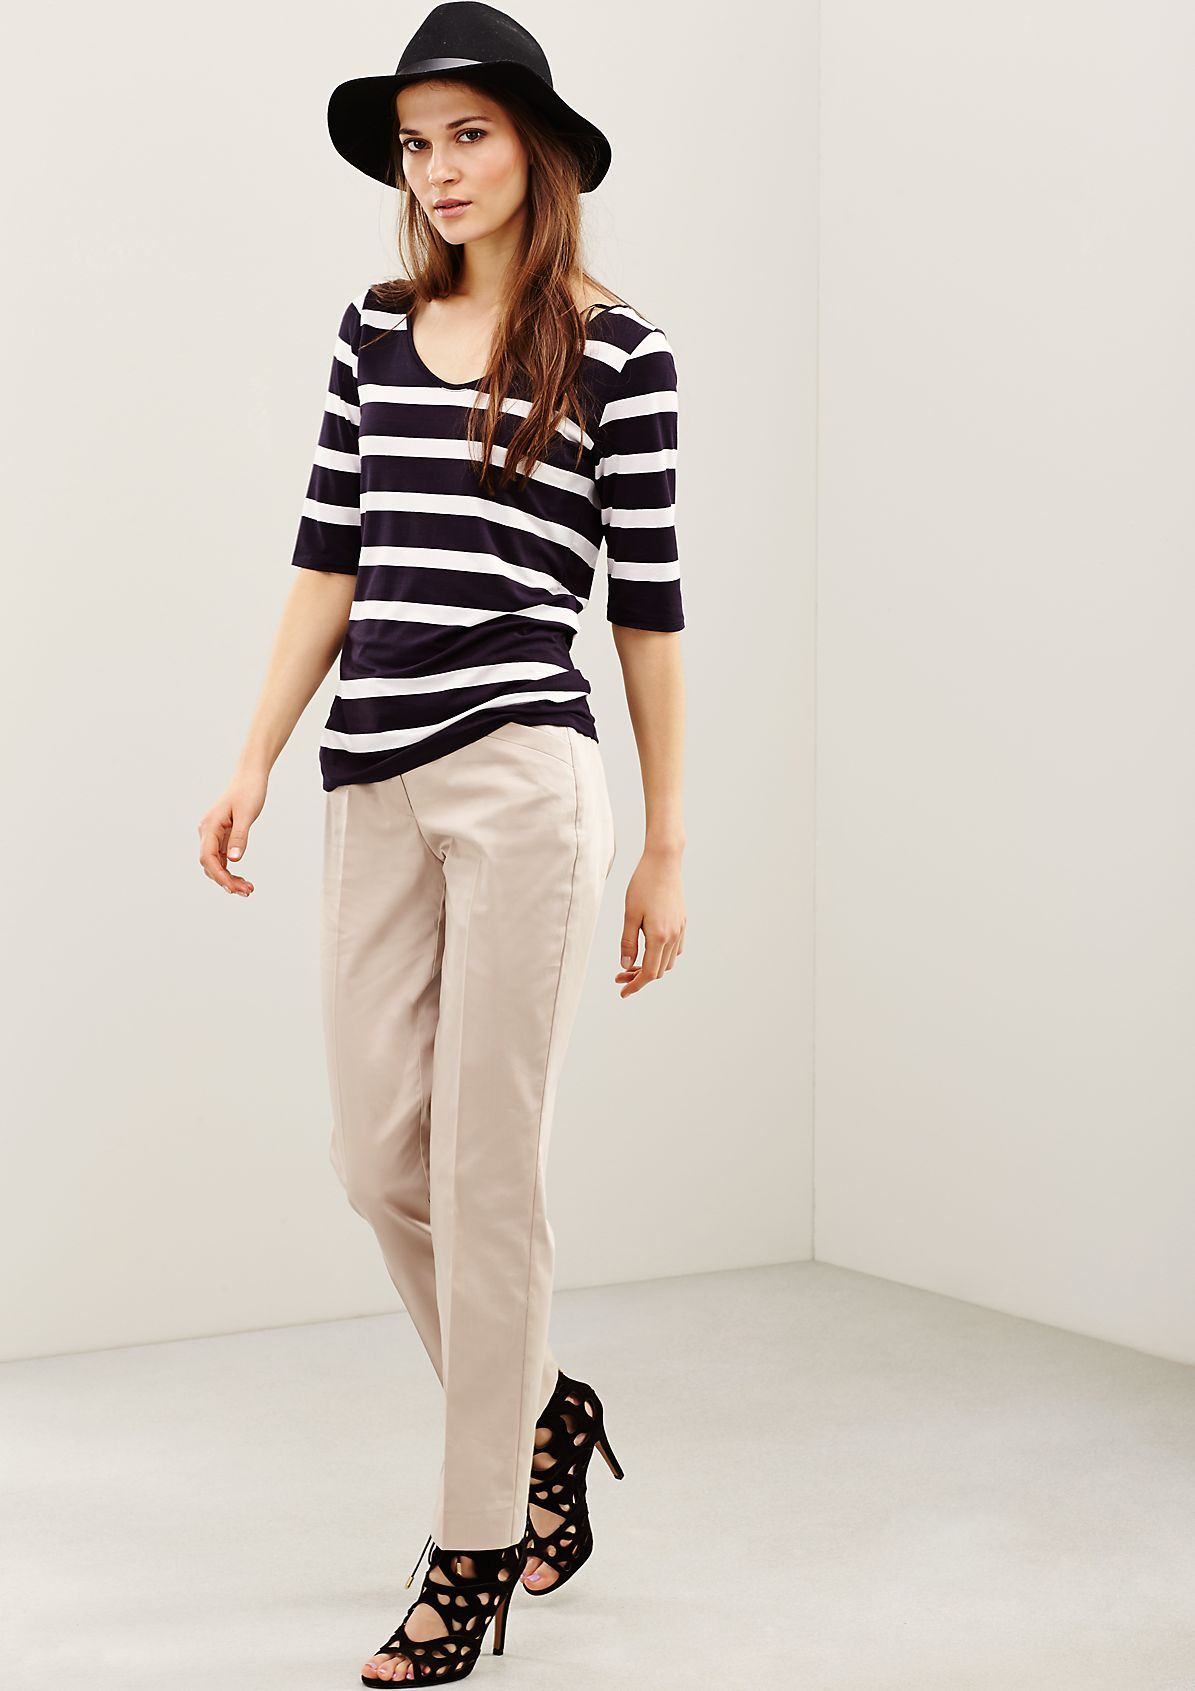 Sporty short sleeve top in a classic striped look from s.Oliver